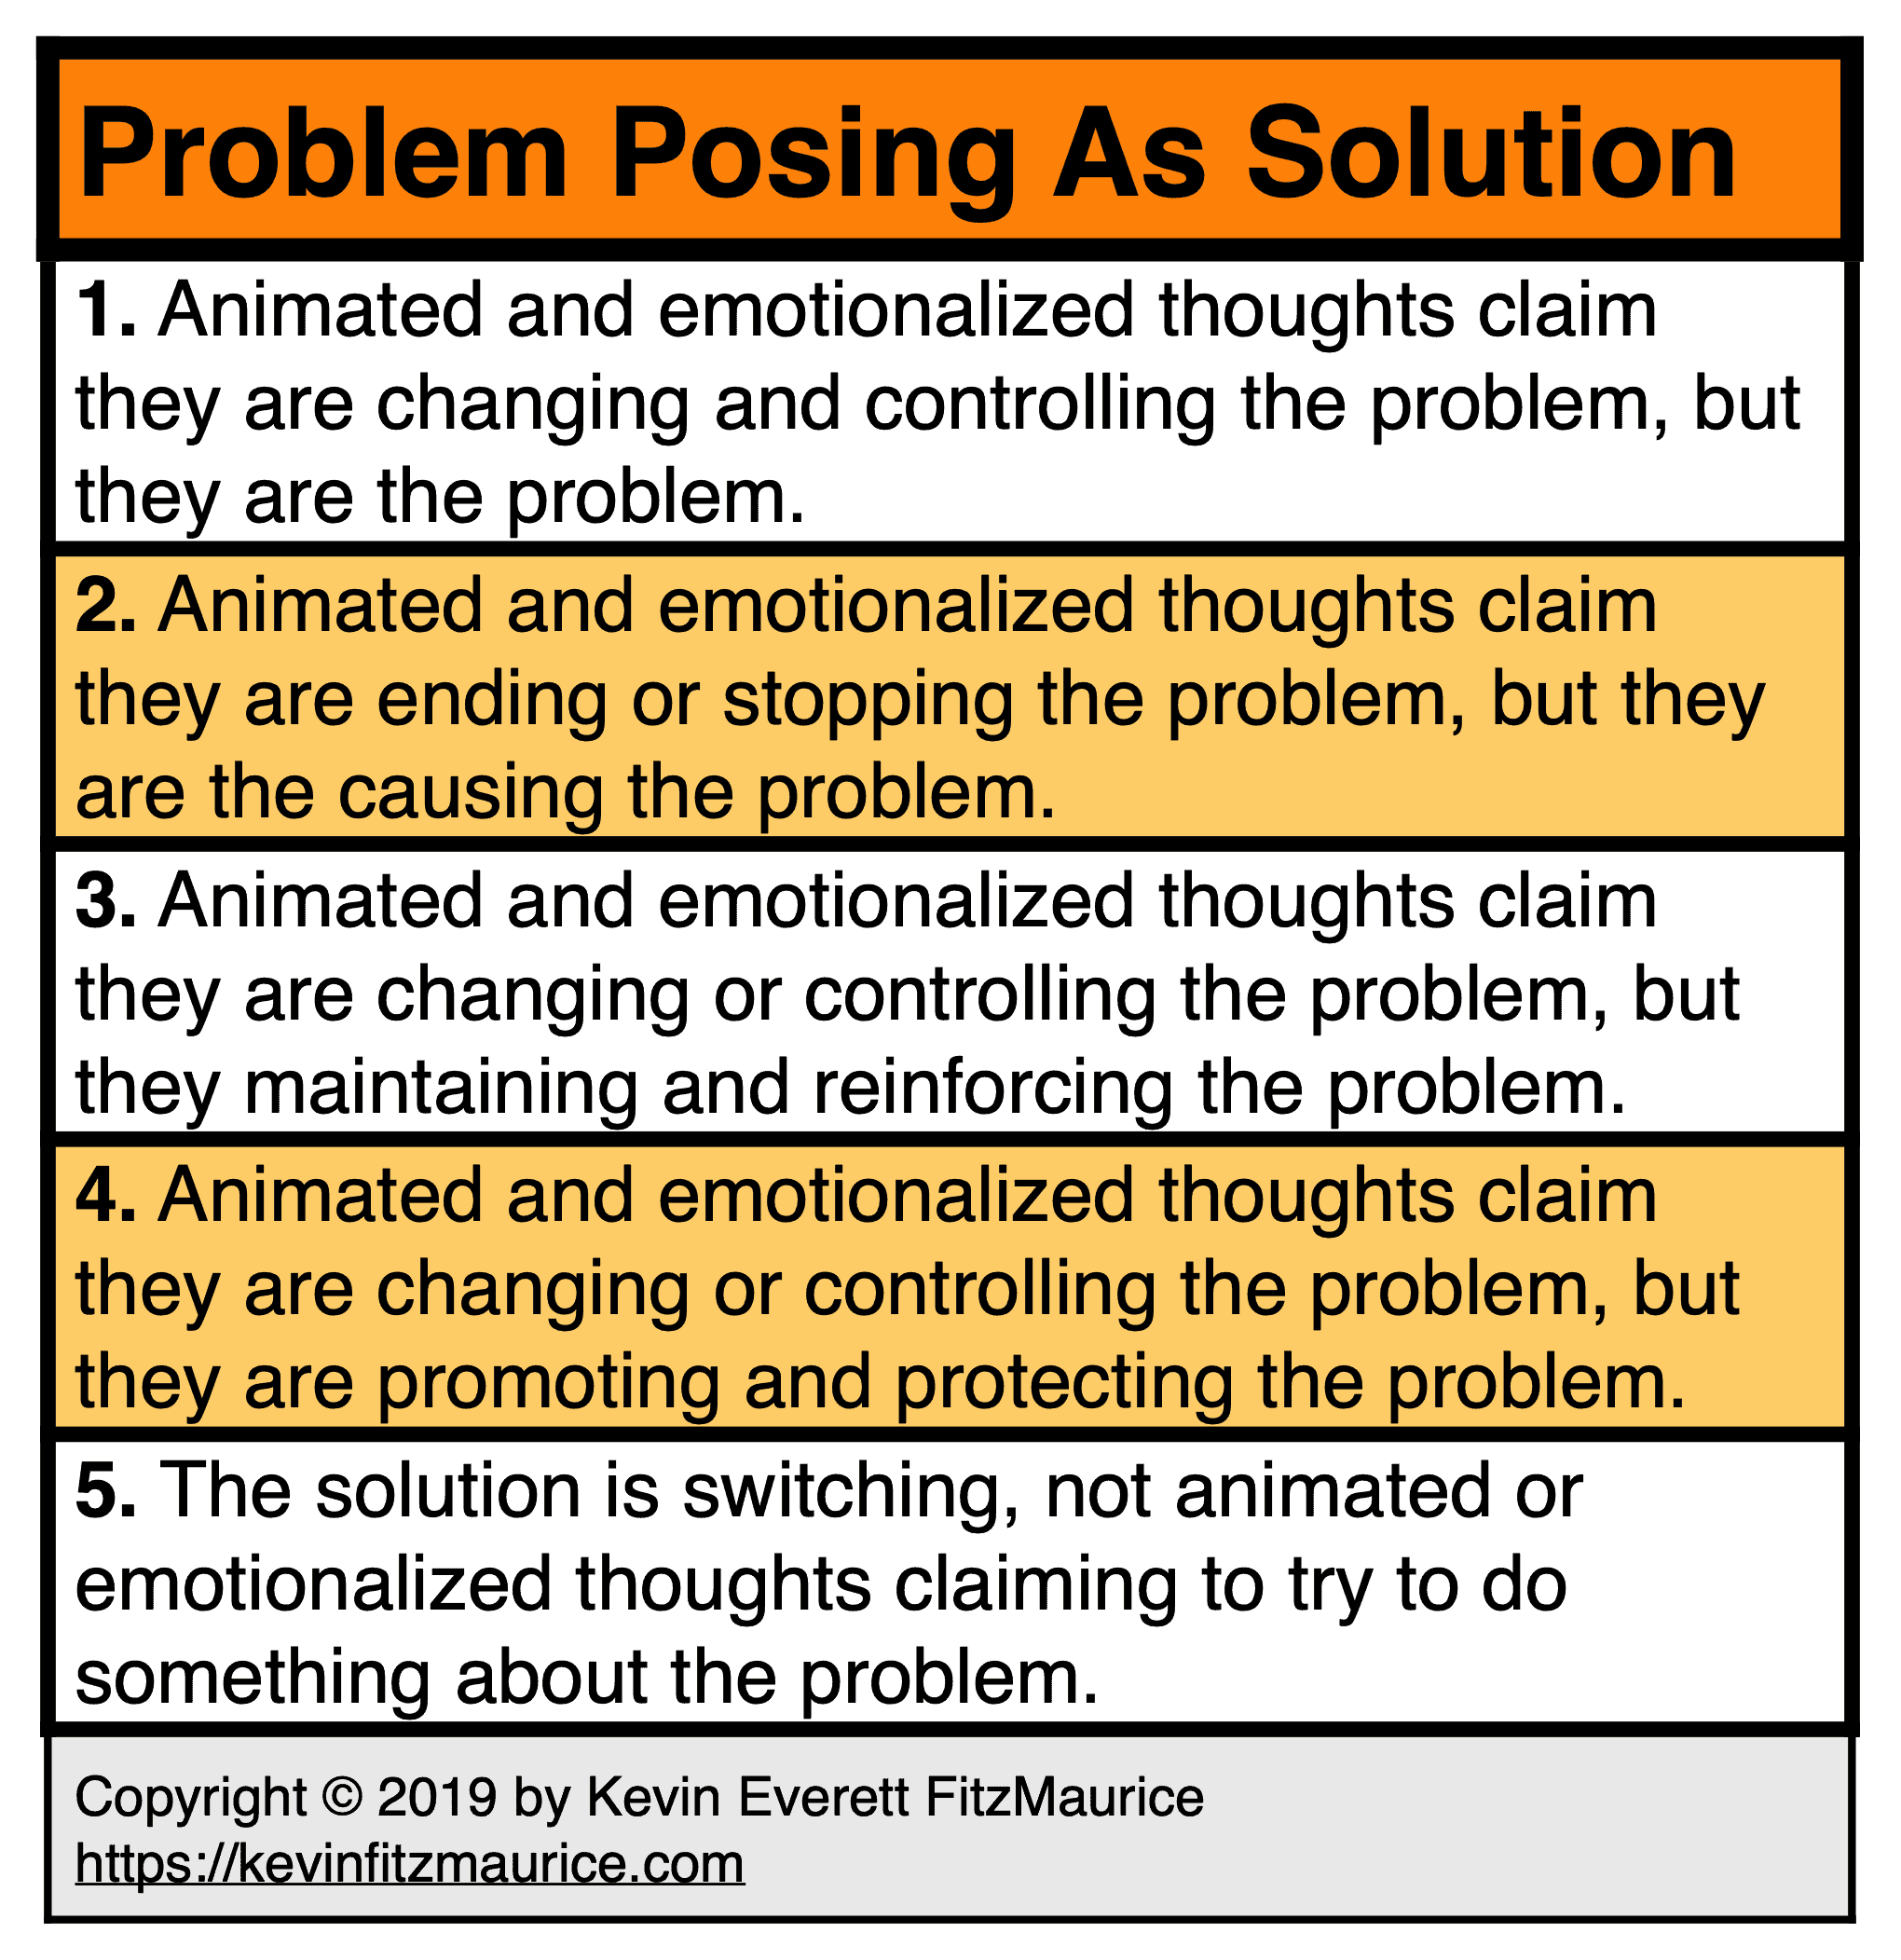 Problem Posing As Solution